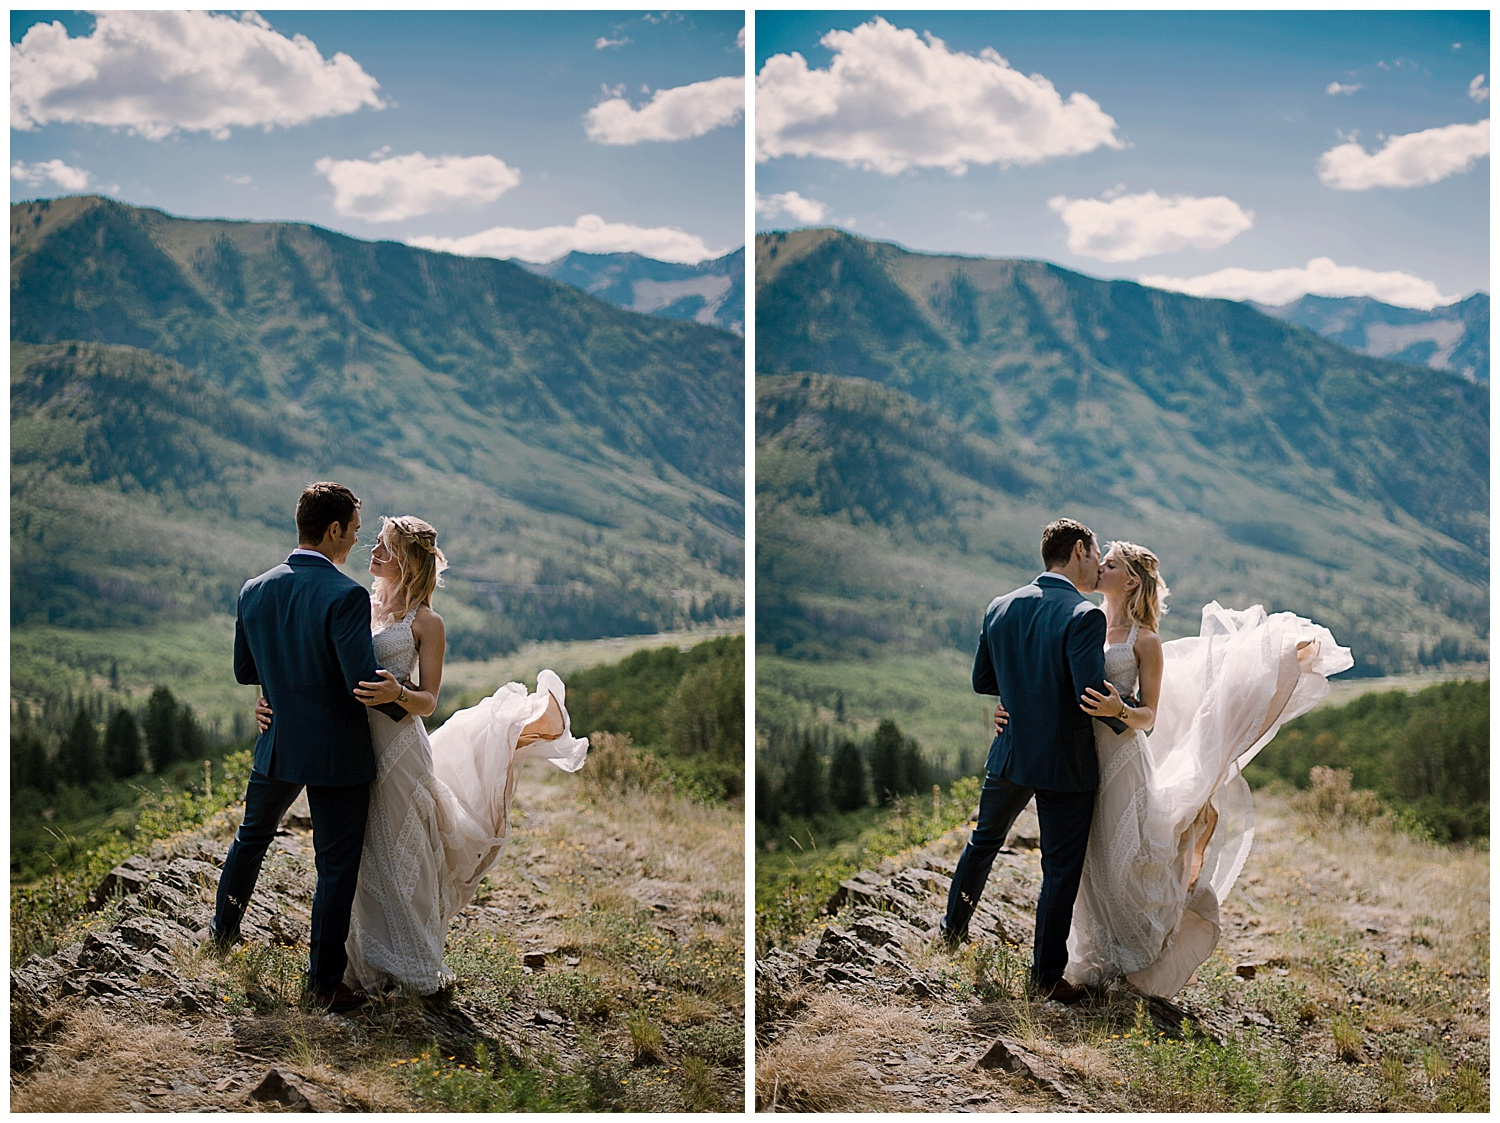 bride and groom hiking in the mountains, marble colorado wedding, maroon bells wilderness wedding, adventurous colorado wedding photographer, adventure wedding, marble lodge wedding